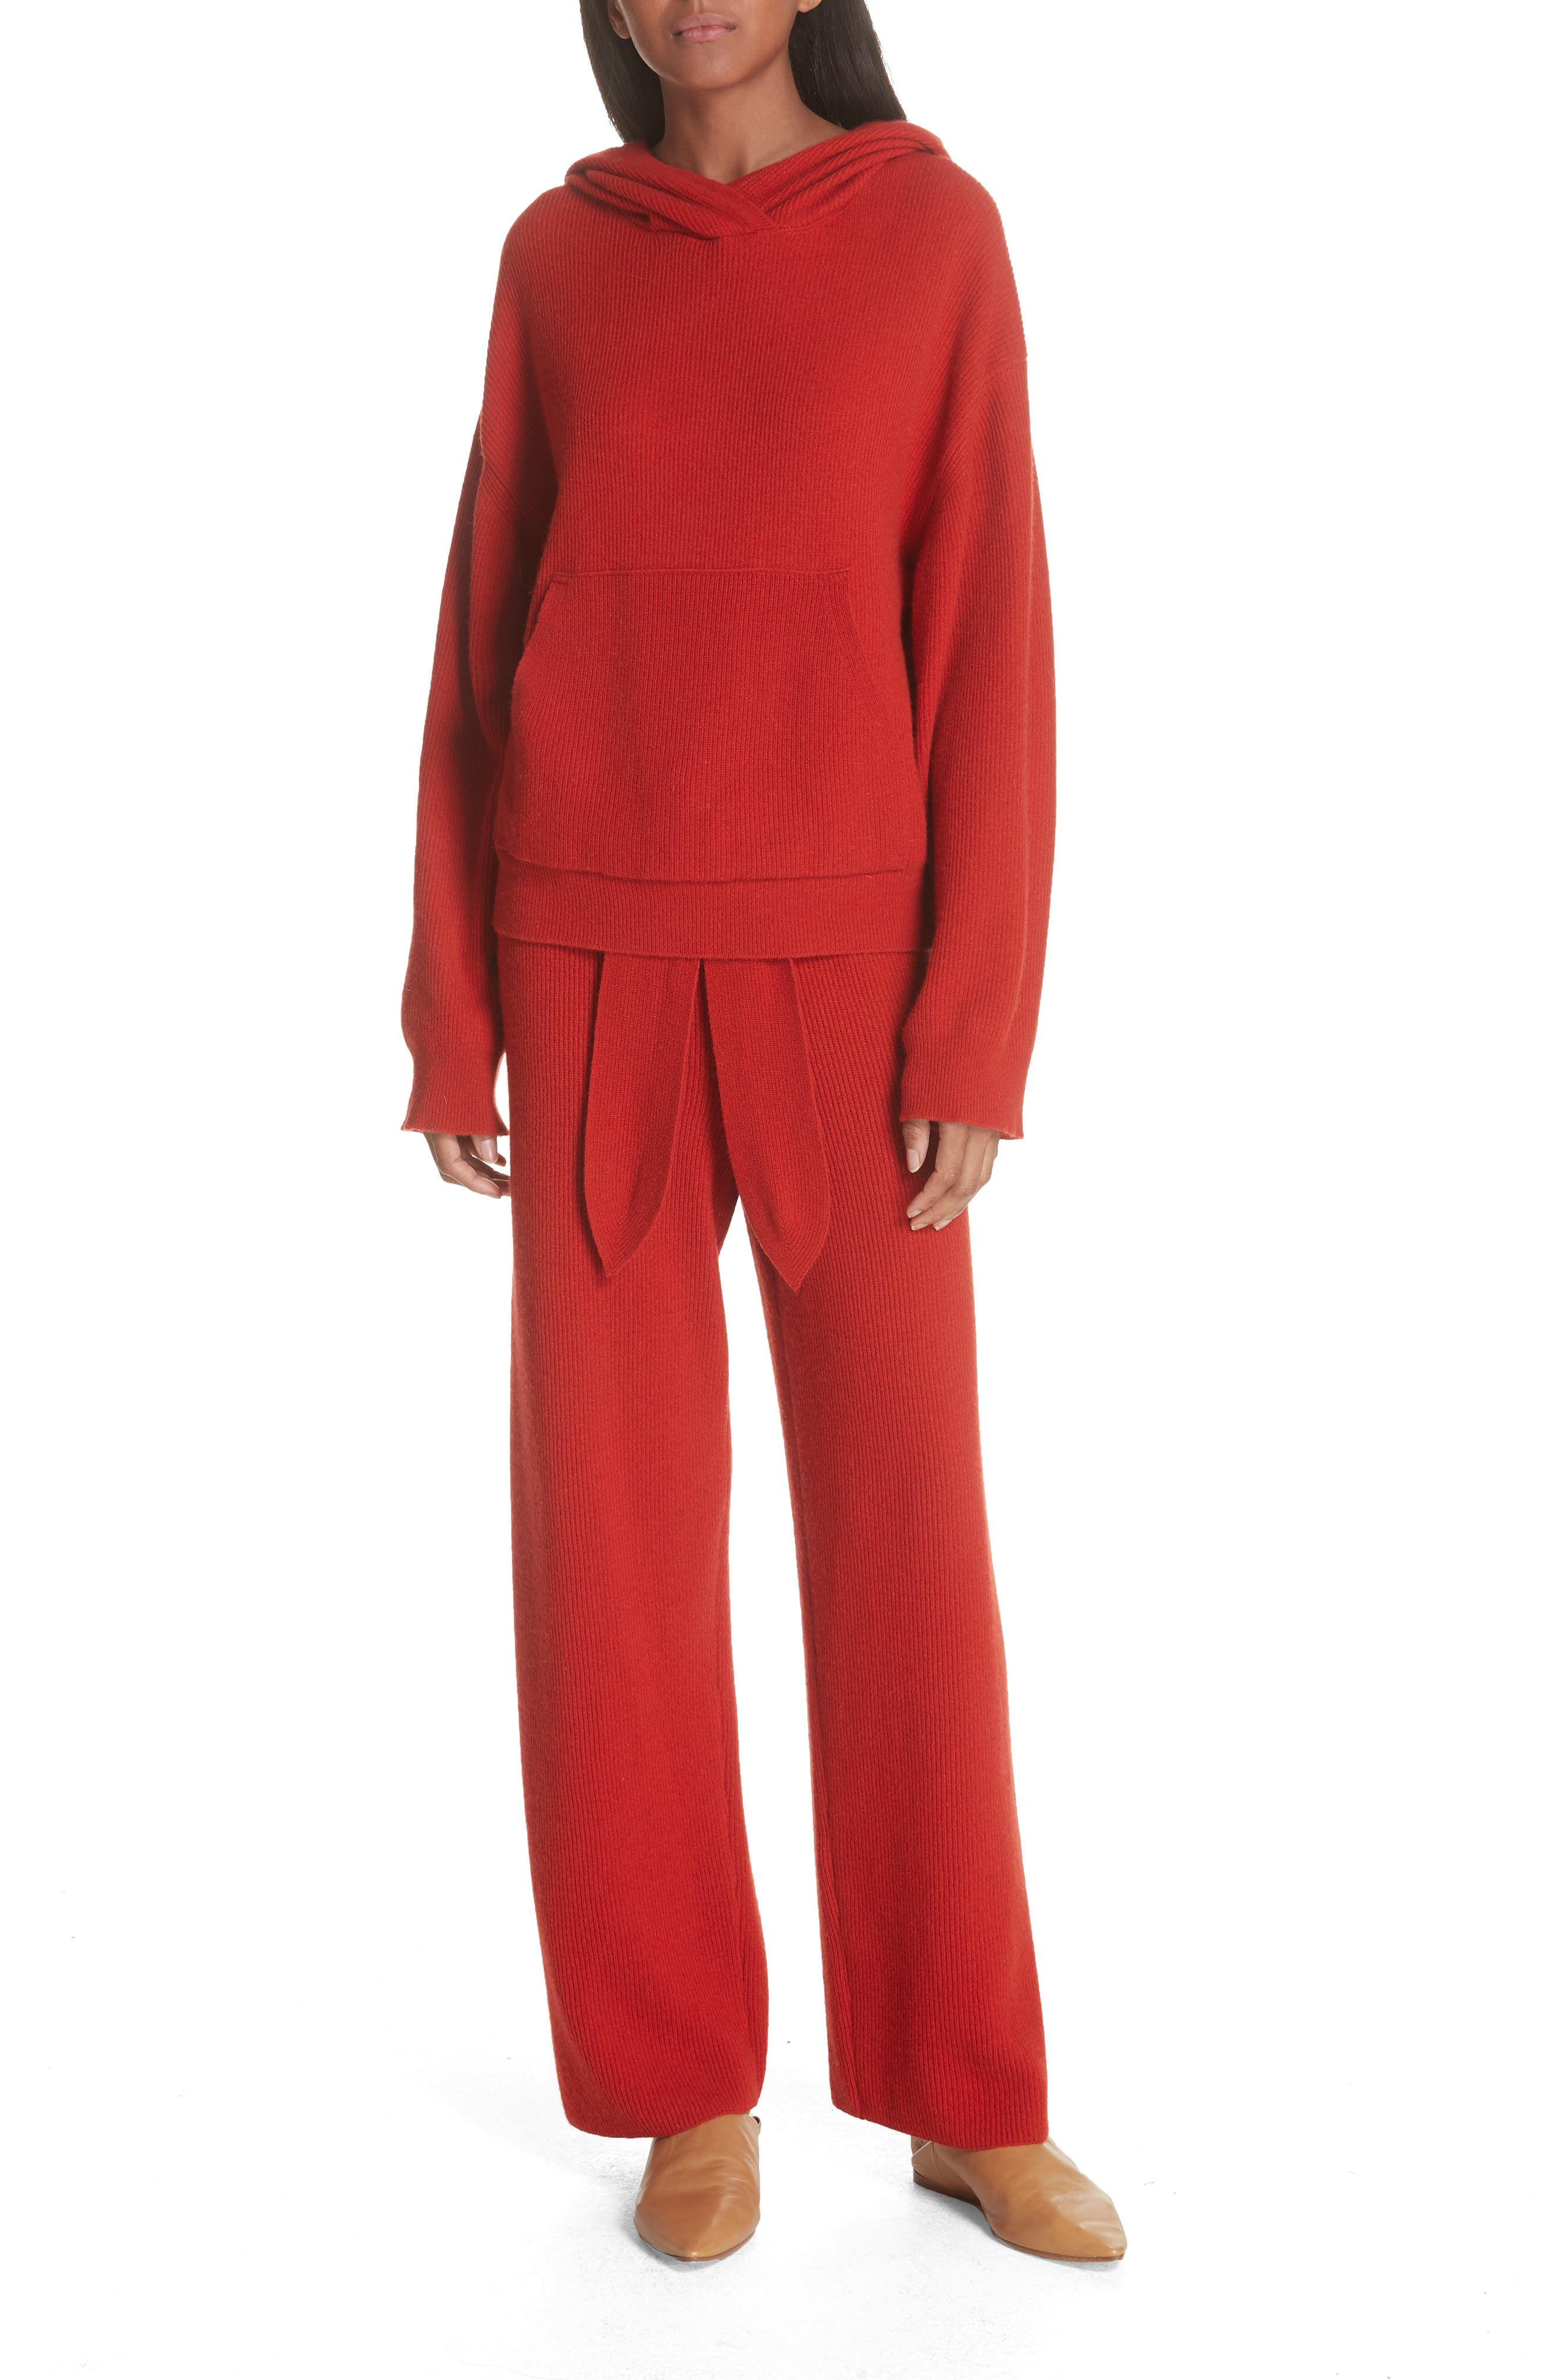 Tigre Merino Wool & Cashmere Blend Pants,                             Alternate thumbnail 7, color,                             RED